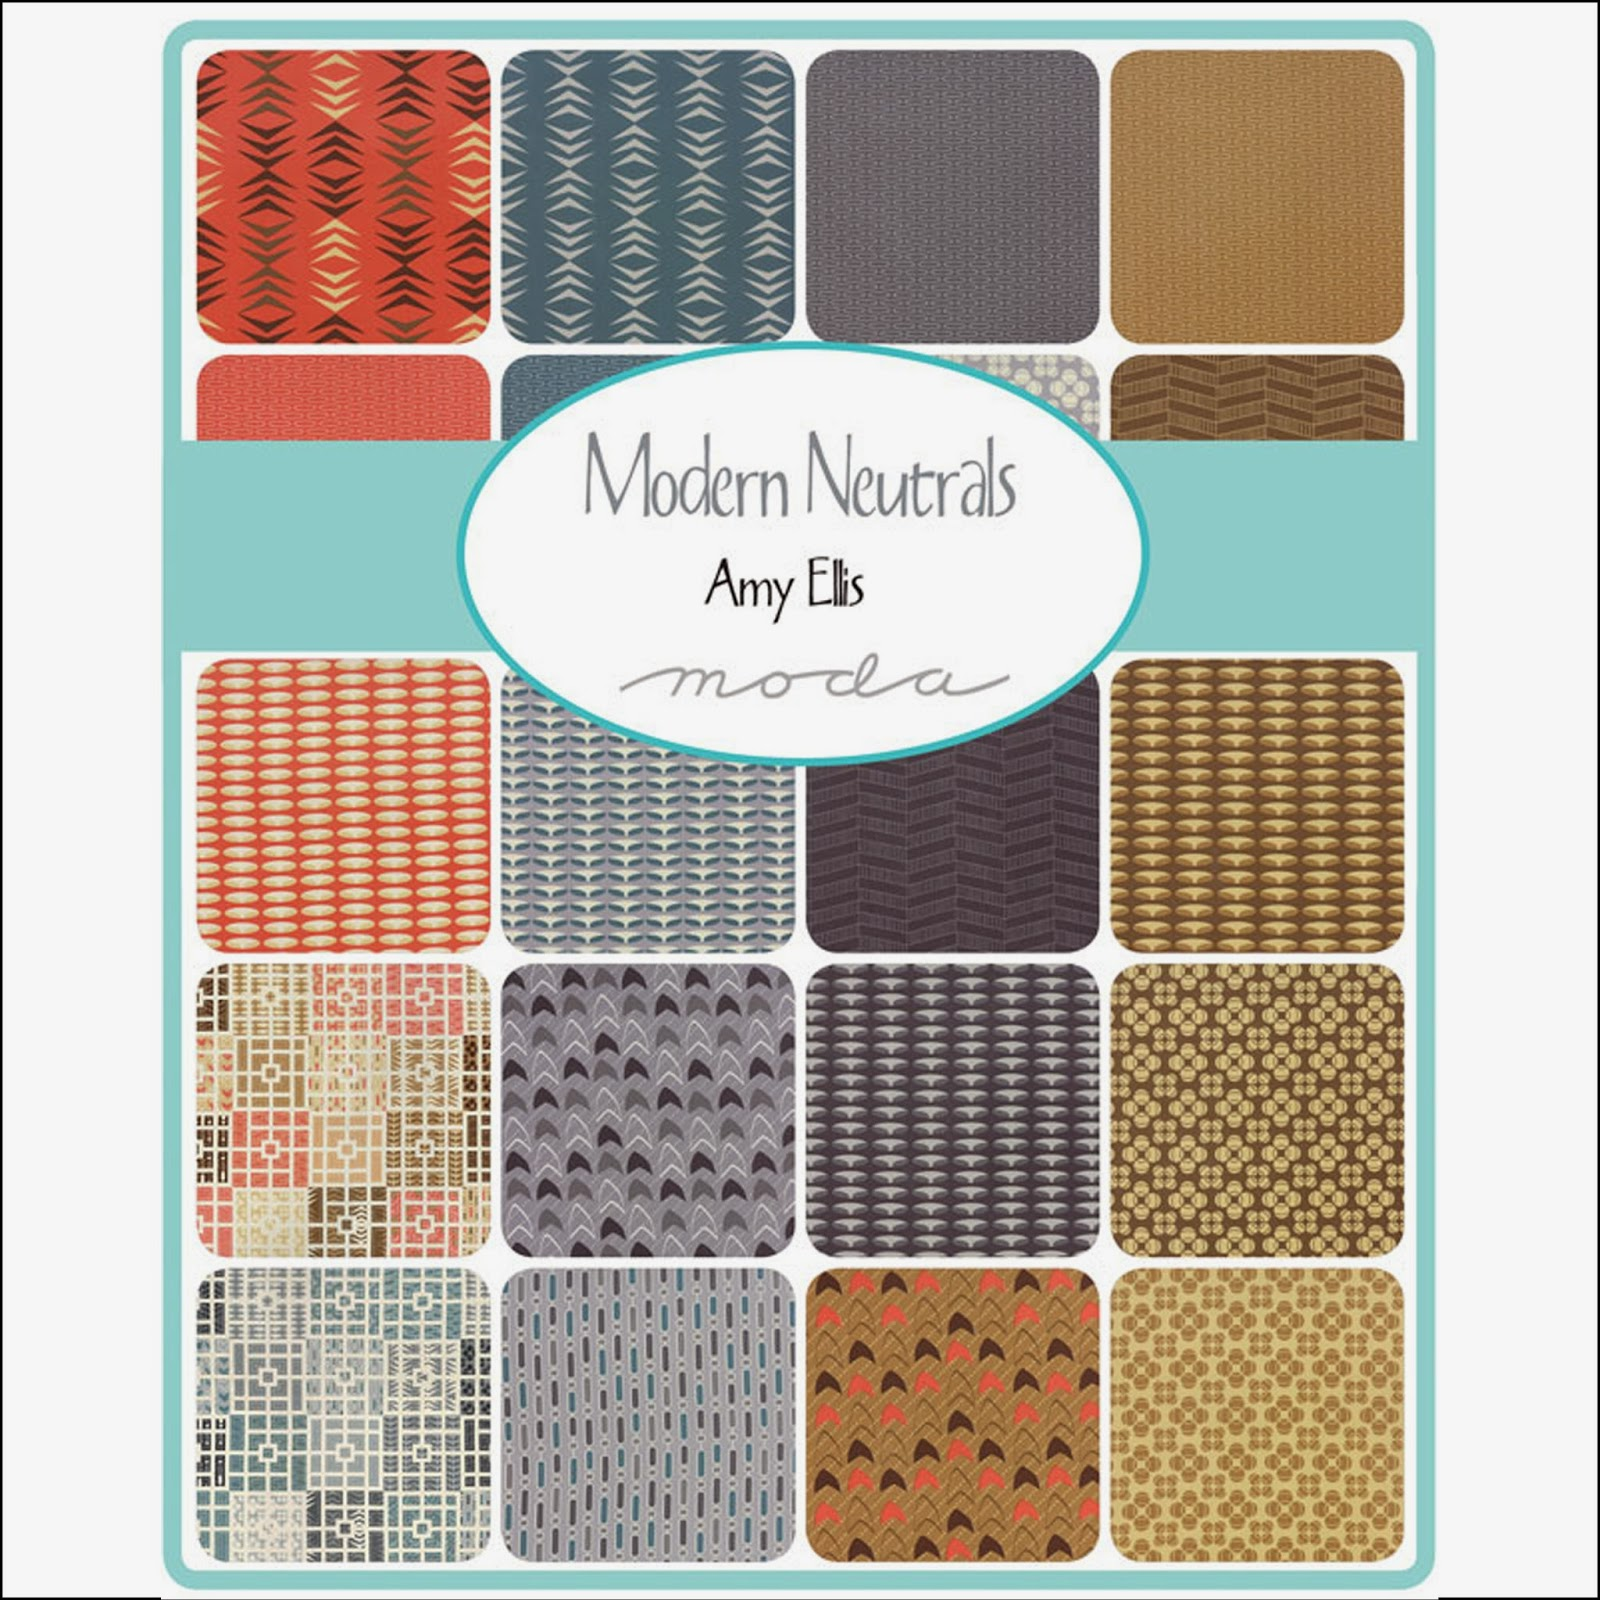 Moda MODERN NEUTRALS Quilt Fabric by Amy Ellis for Moda Fabrics